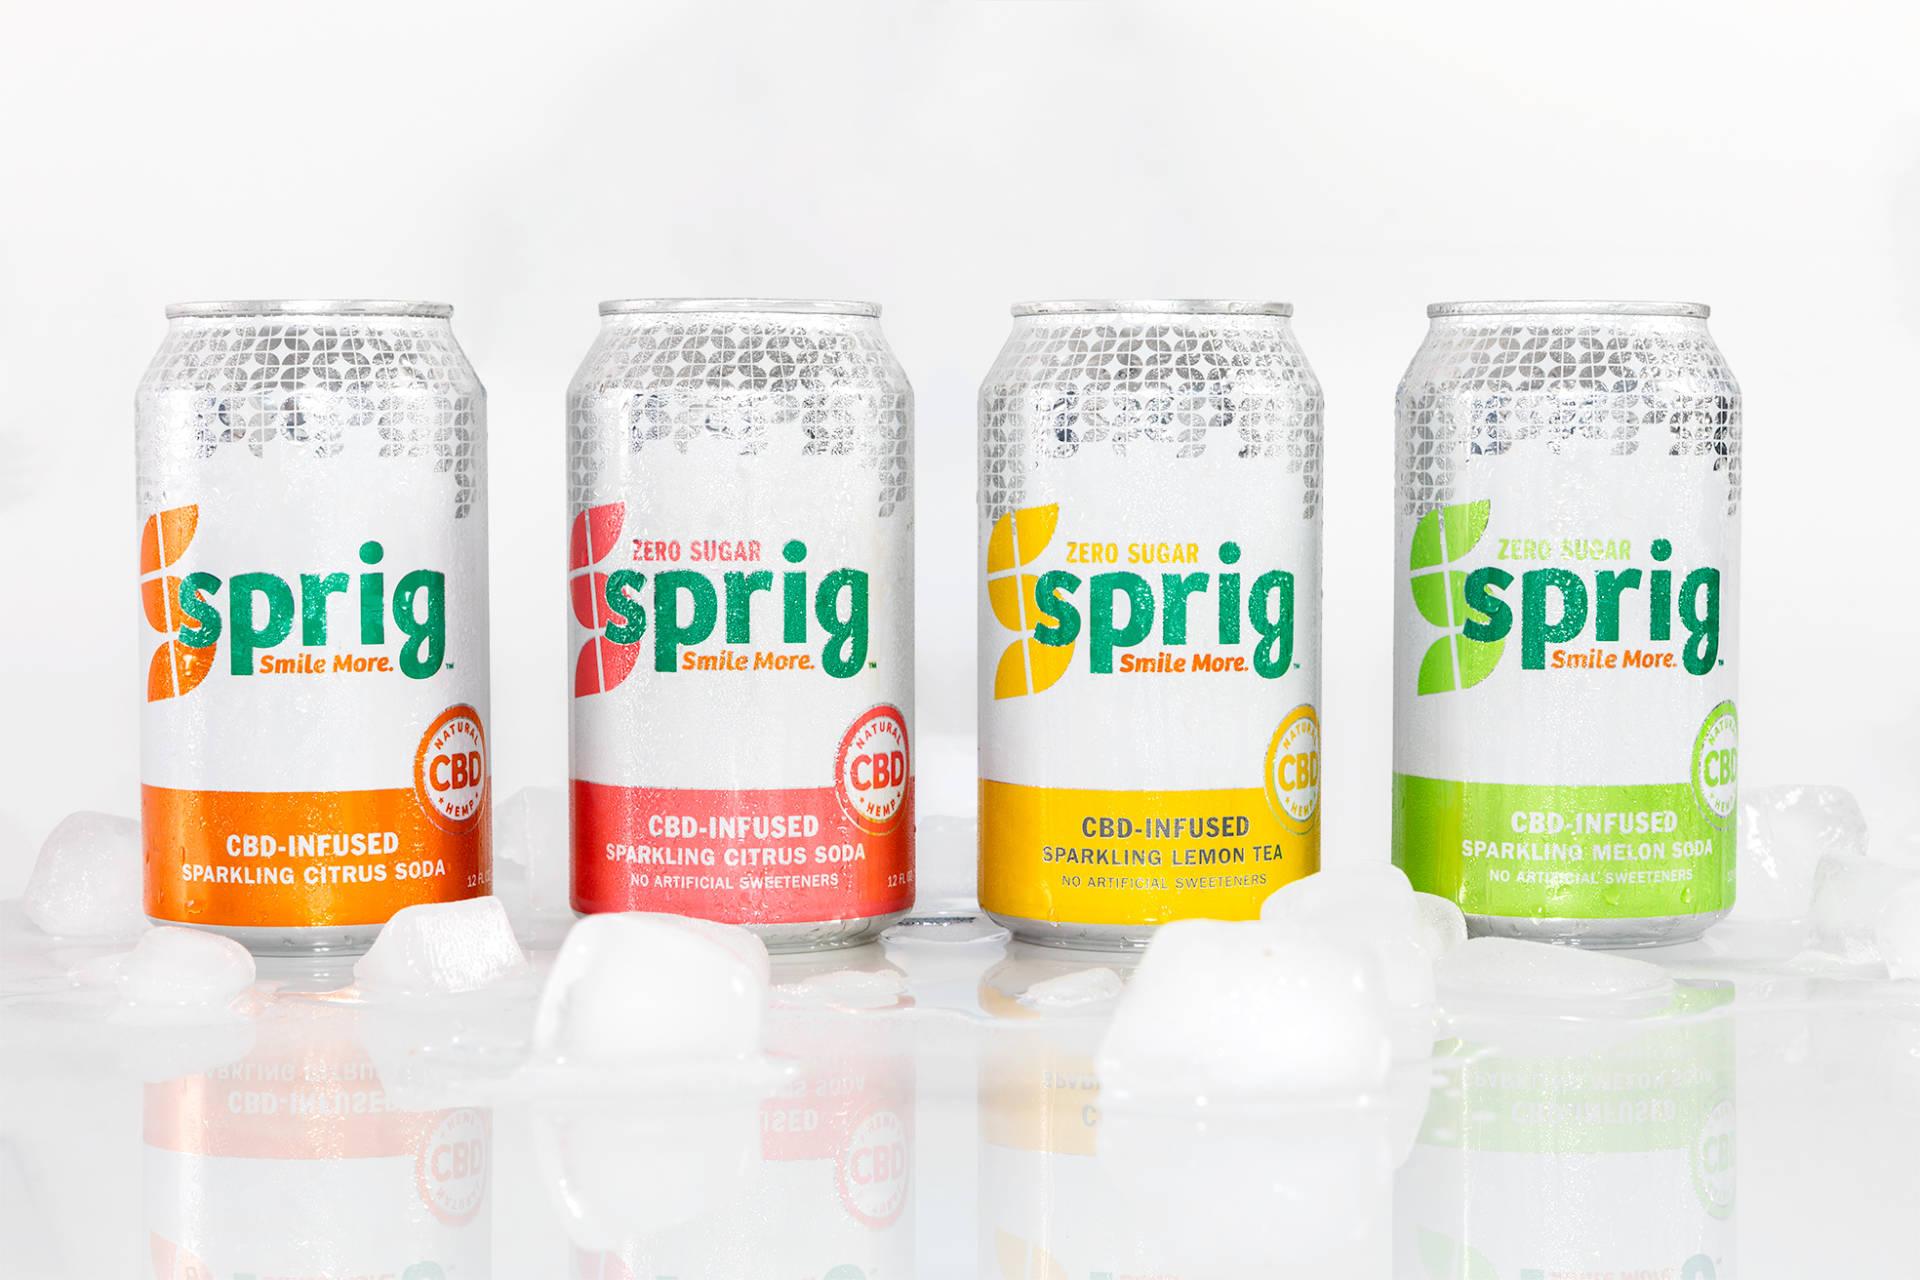 Sprig offers both THC-infused and CBD sodas in a can.